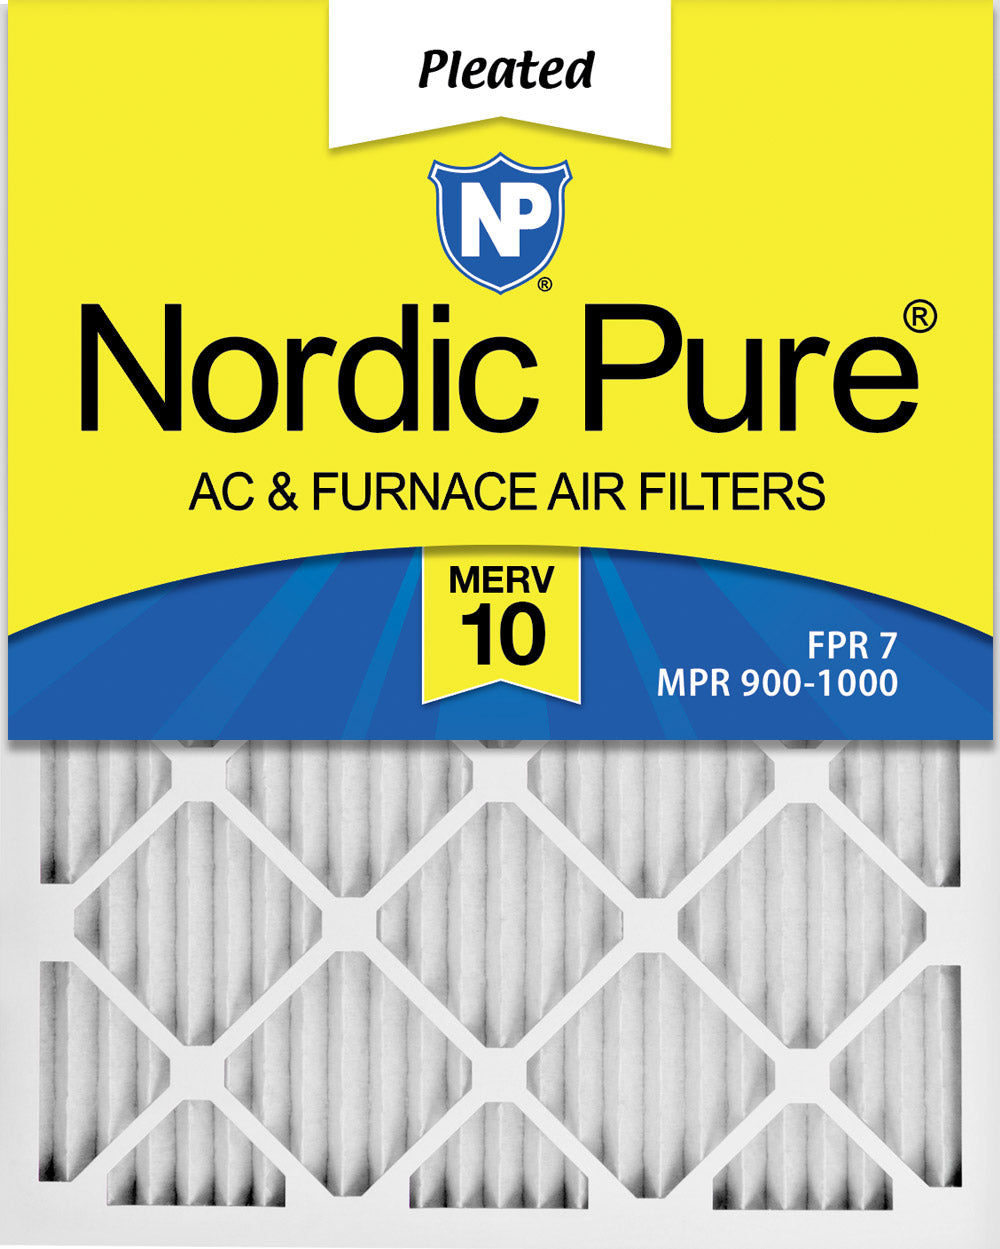 16x25x1 Pleated MERV 10 Air Filters 6 Pack